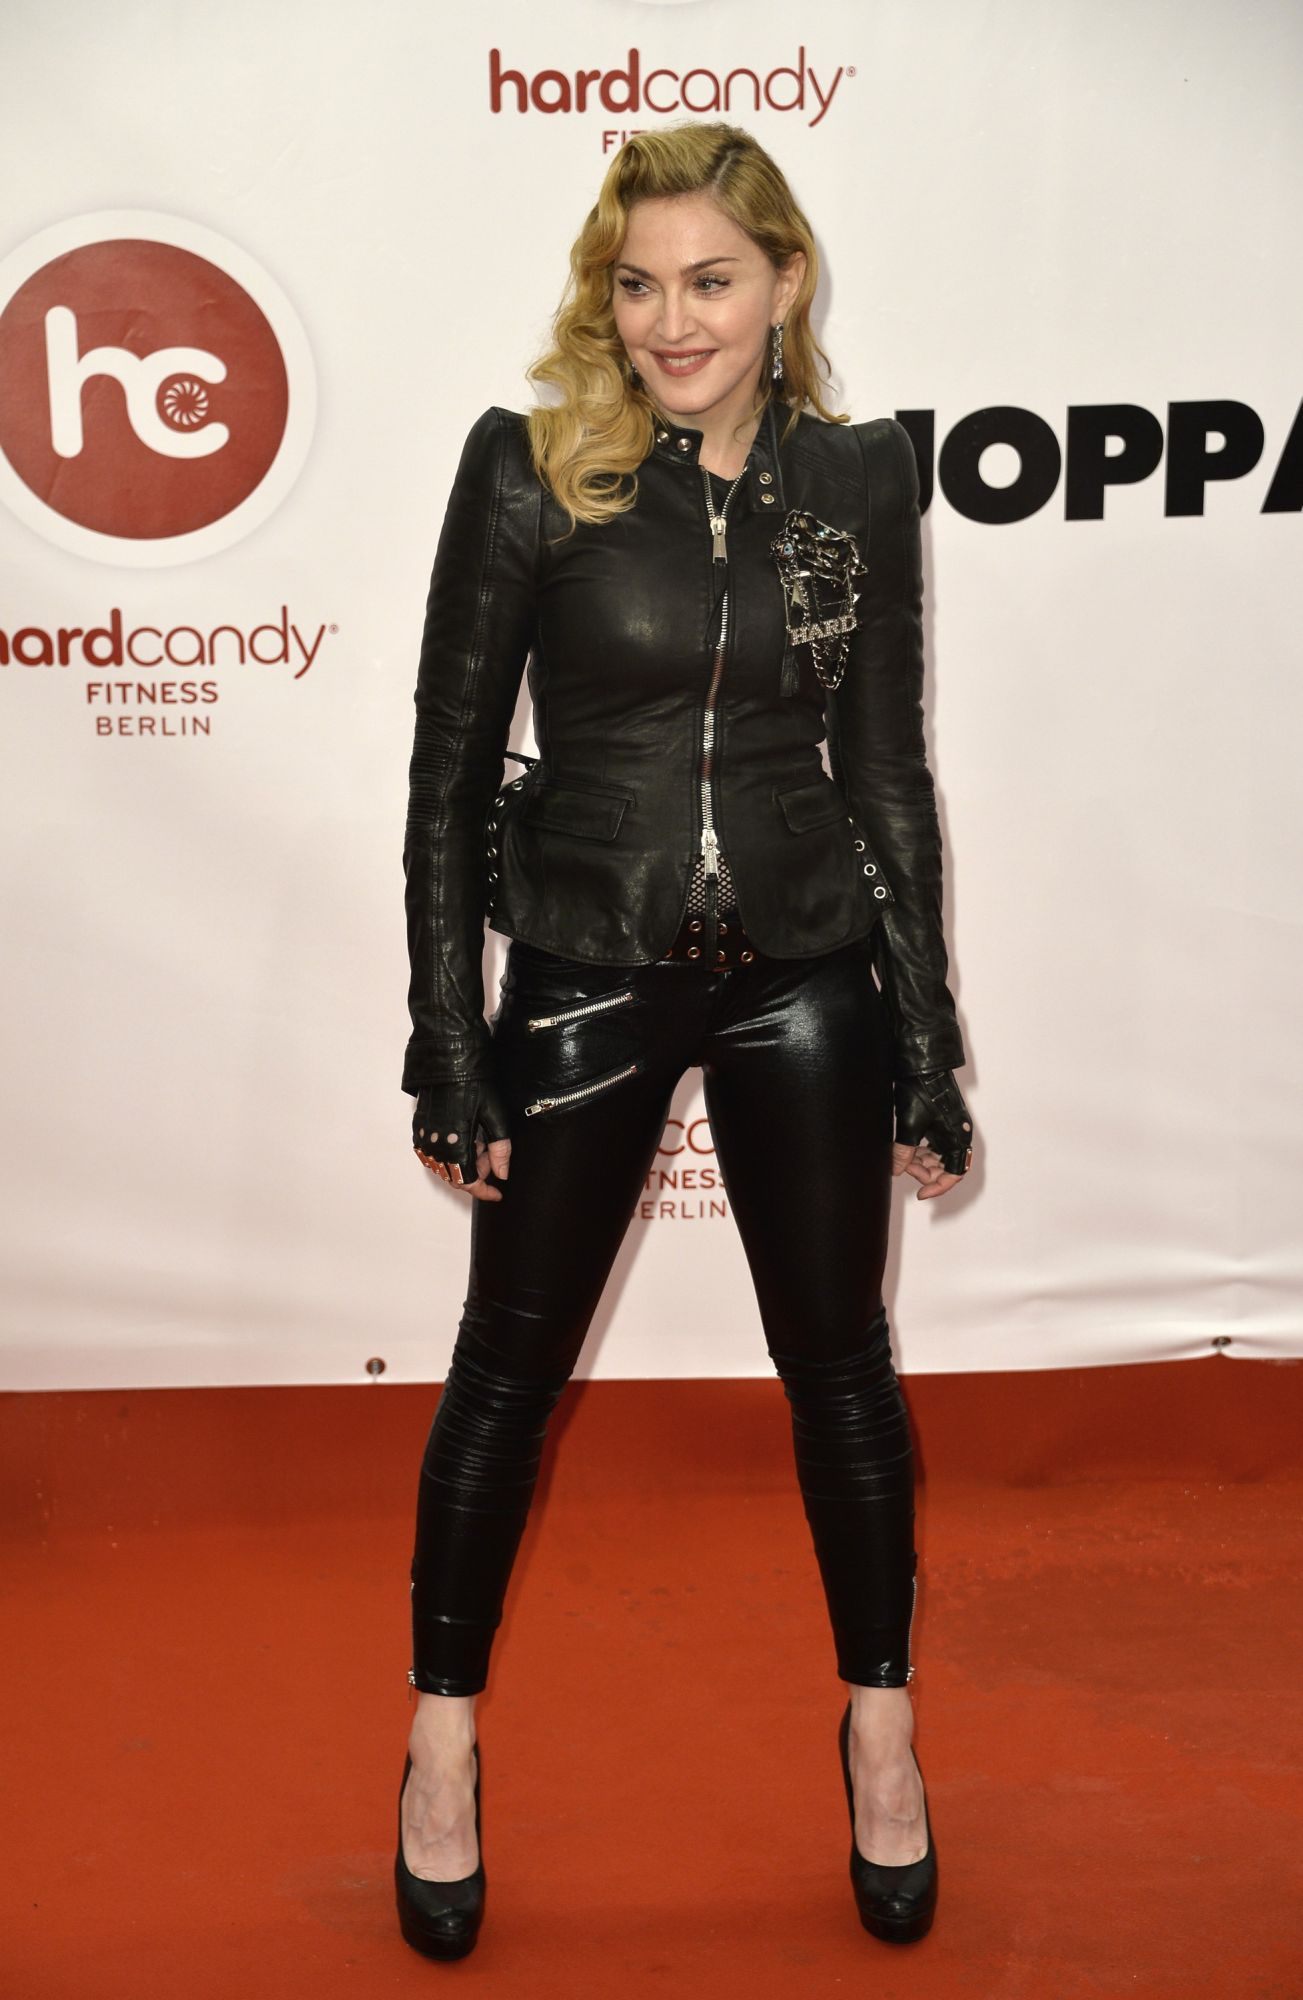 20131017-pictures-madonna-hard-candy-fitness-center-berlin-08.jpg